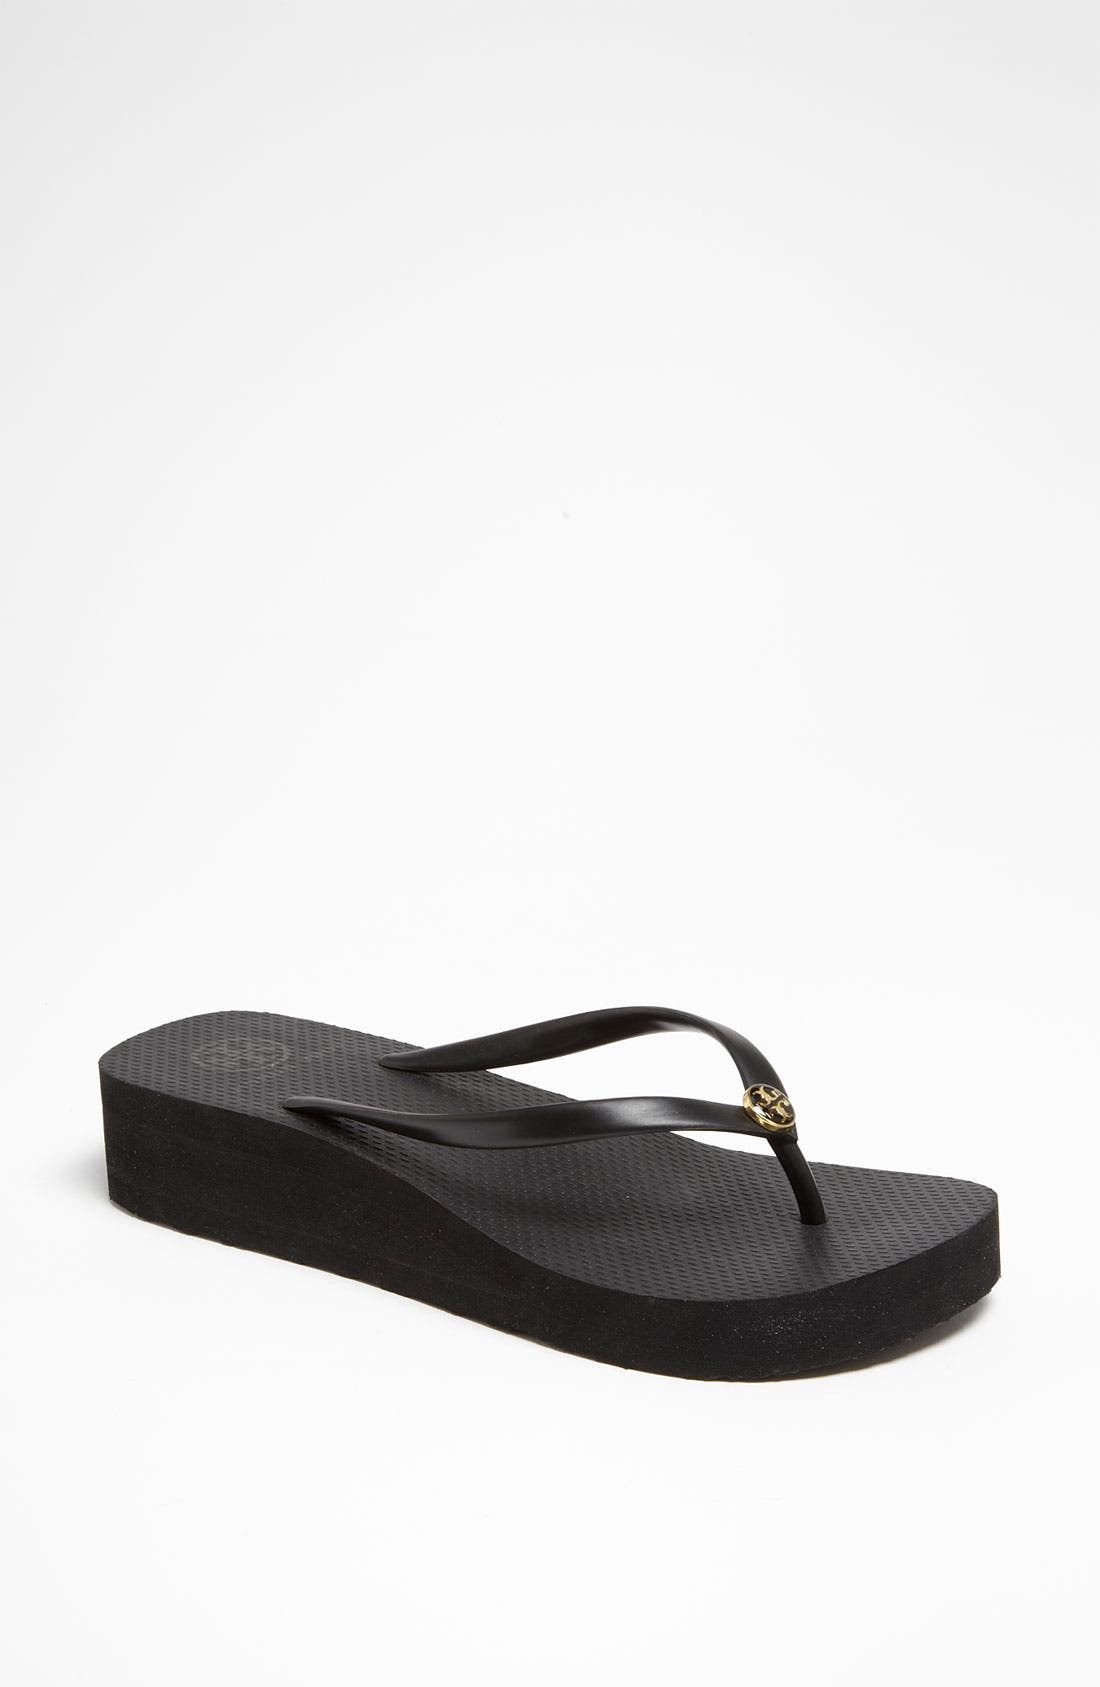 Alternate Image 1 Selected - Tory Burch Flip Flop